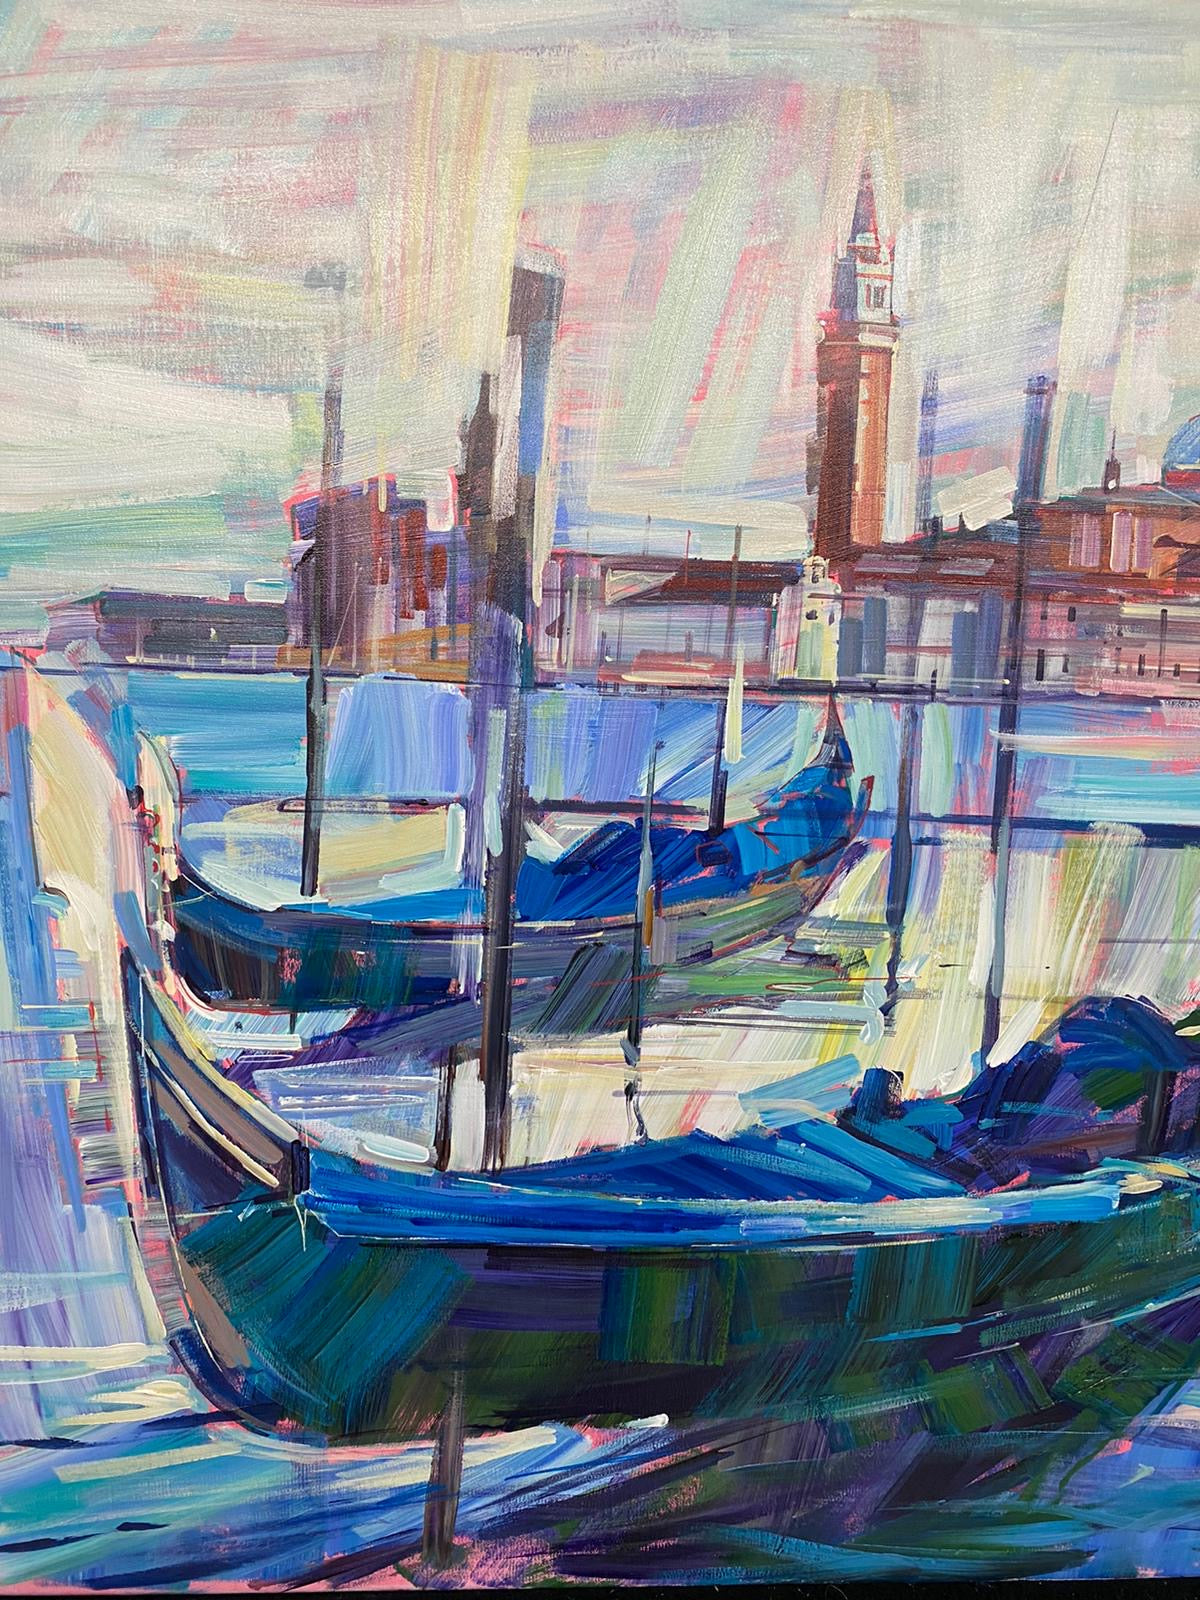 Gondolas at Rest by Colin Brown